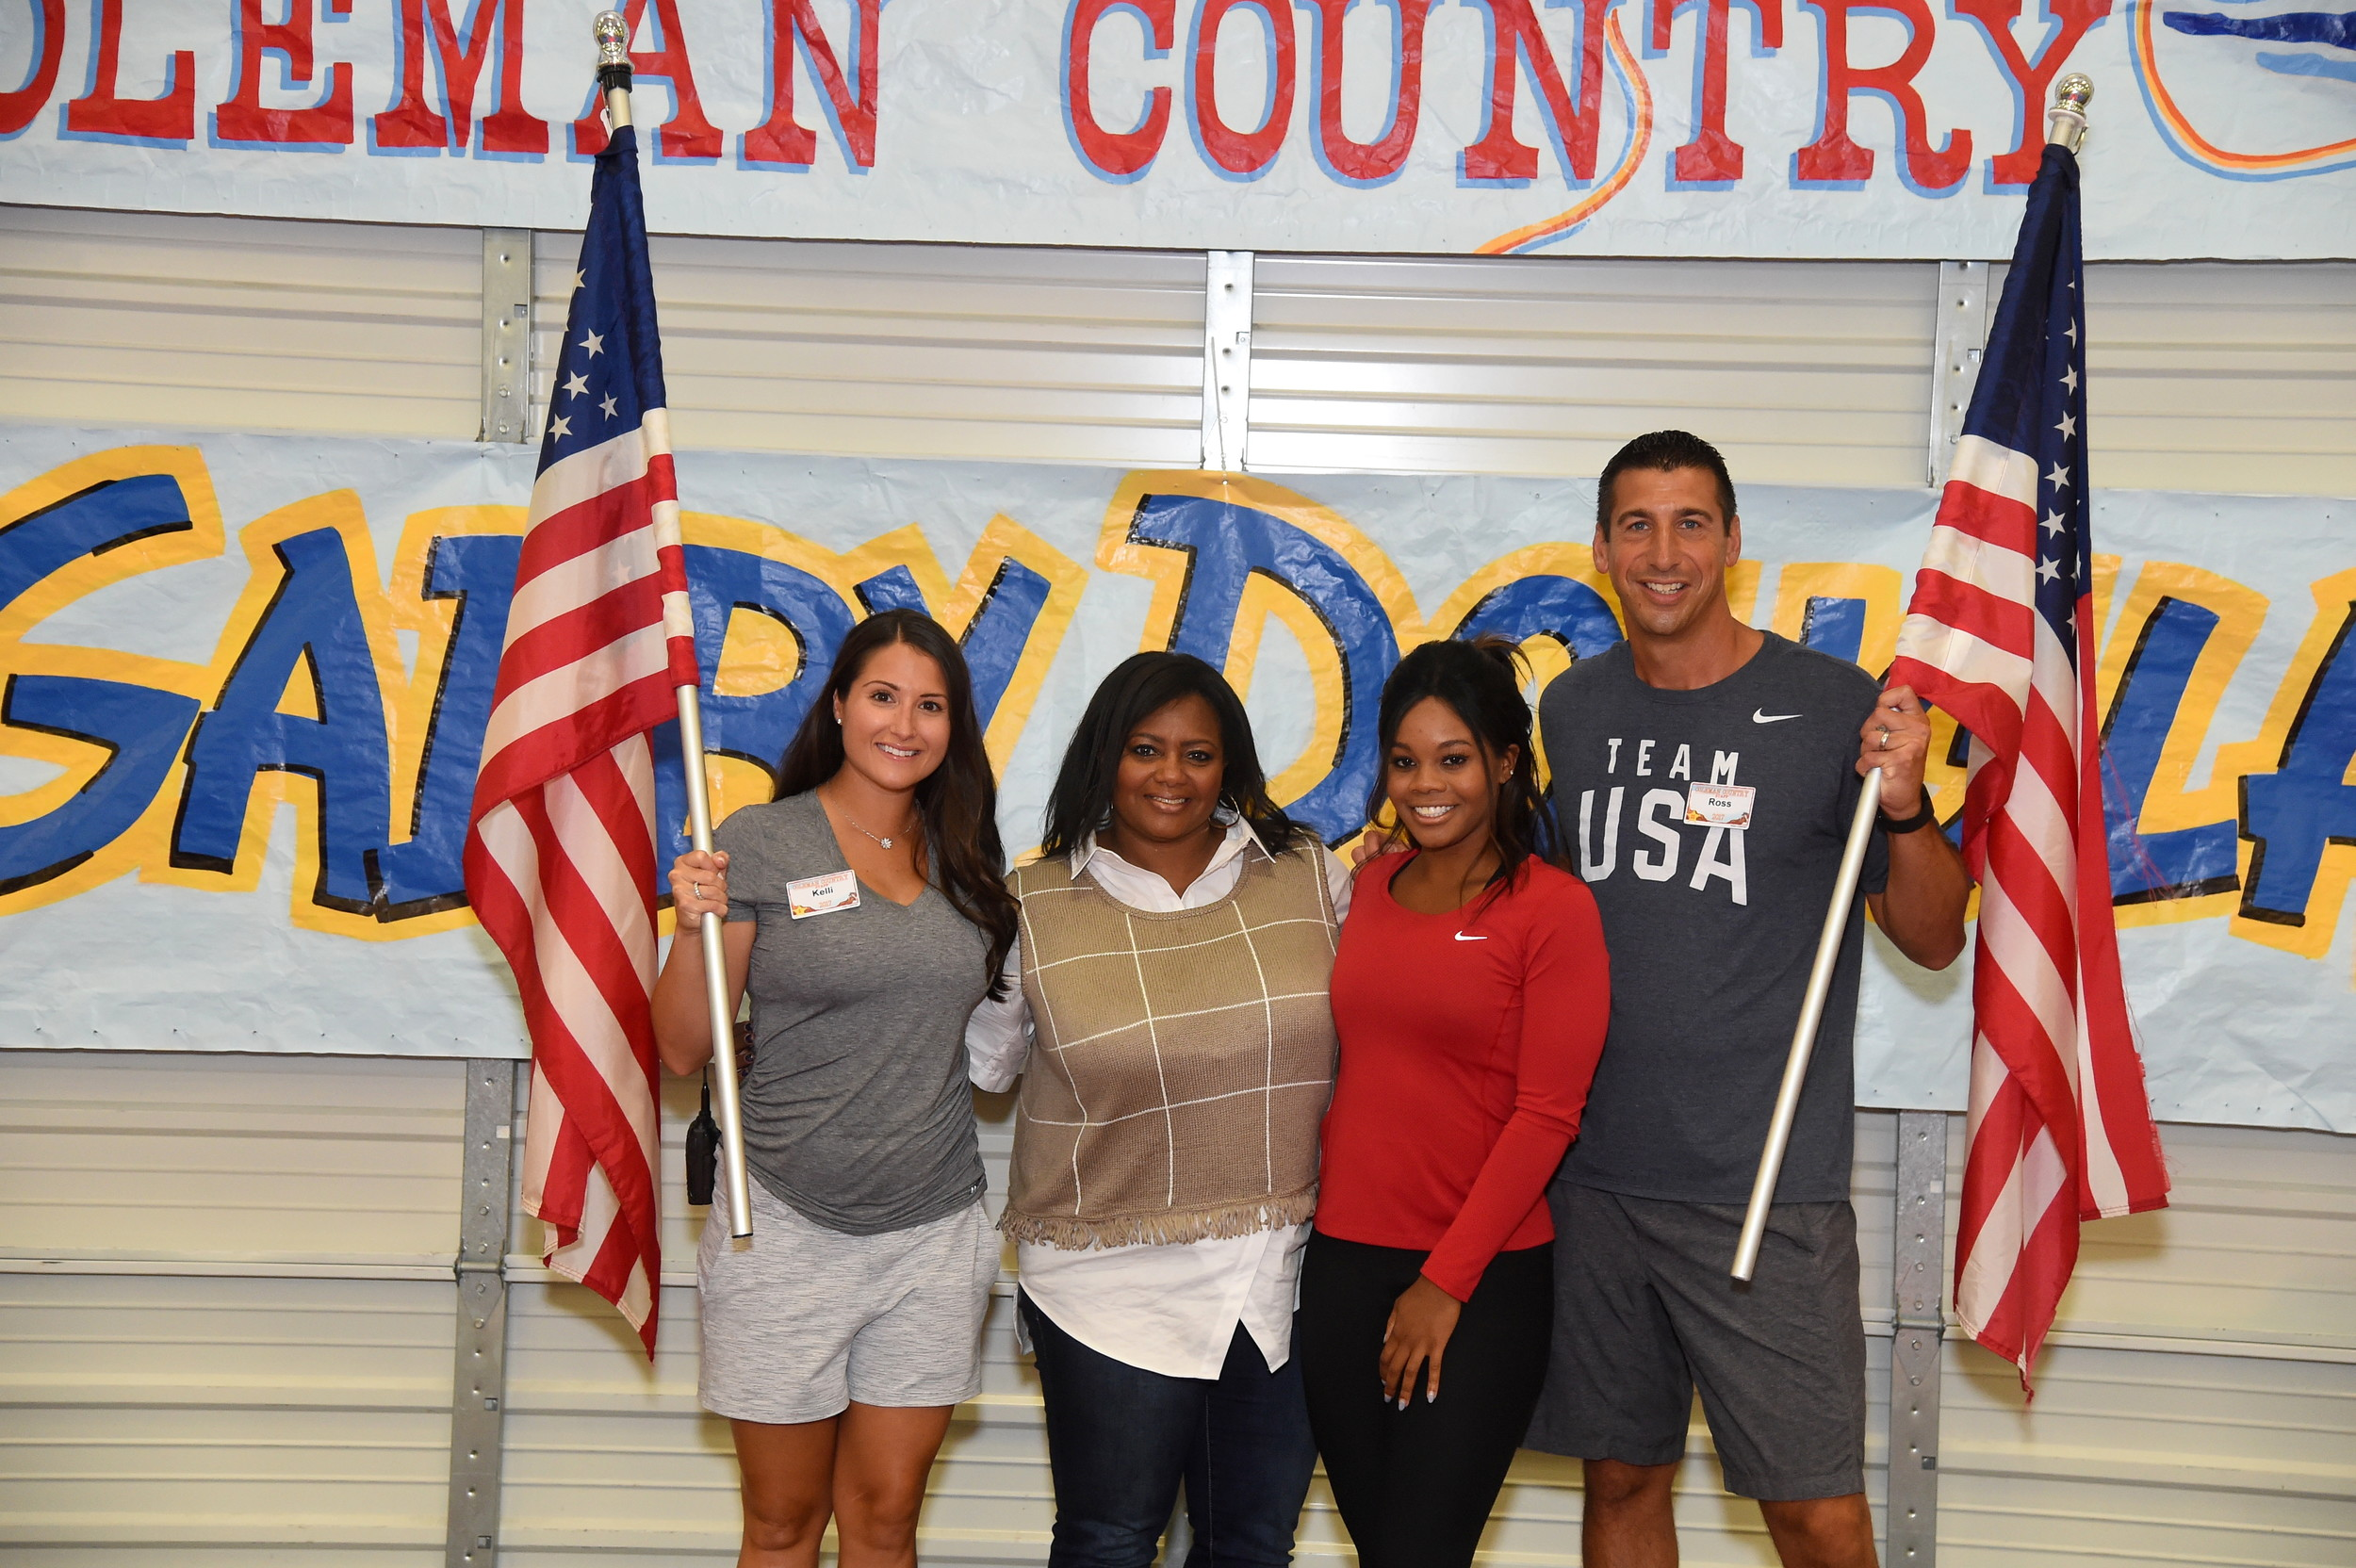 Kelli Coleman, Gabby Douglas's mother Natalie Hawkins and Ross Coleman, joined Douglas for a photo.